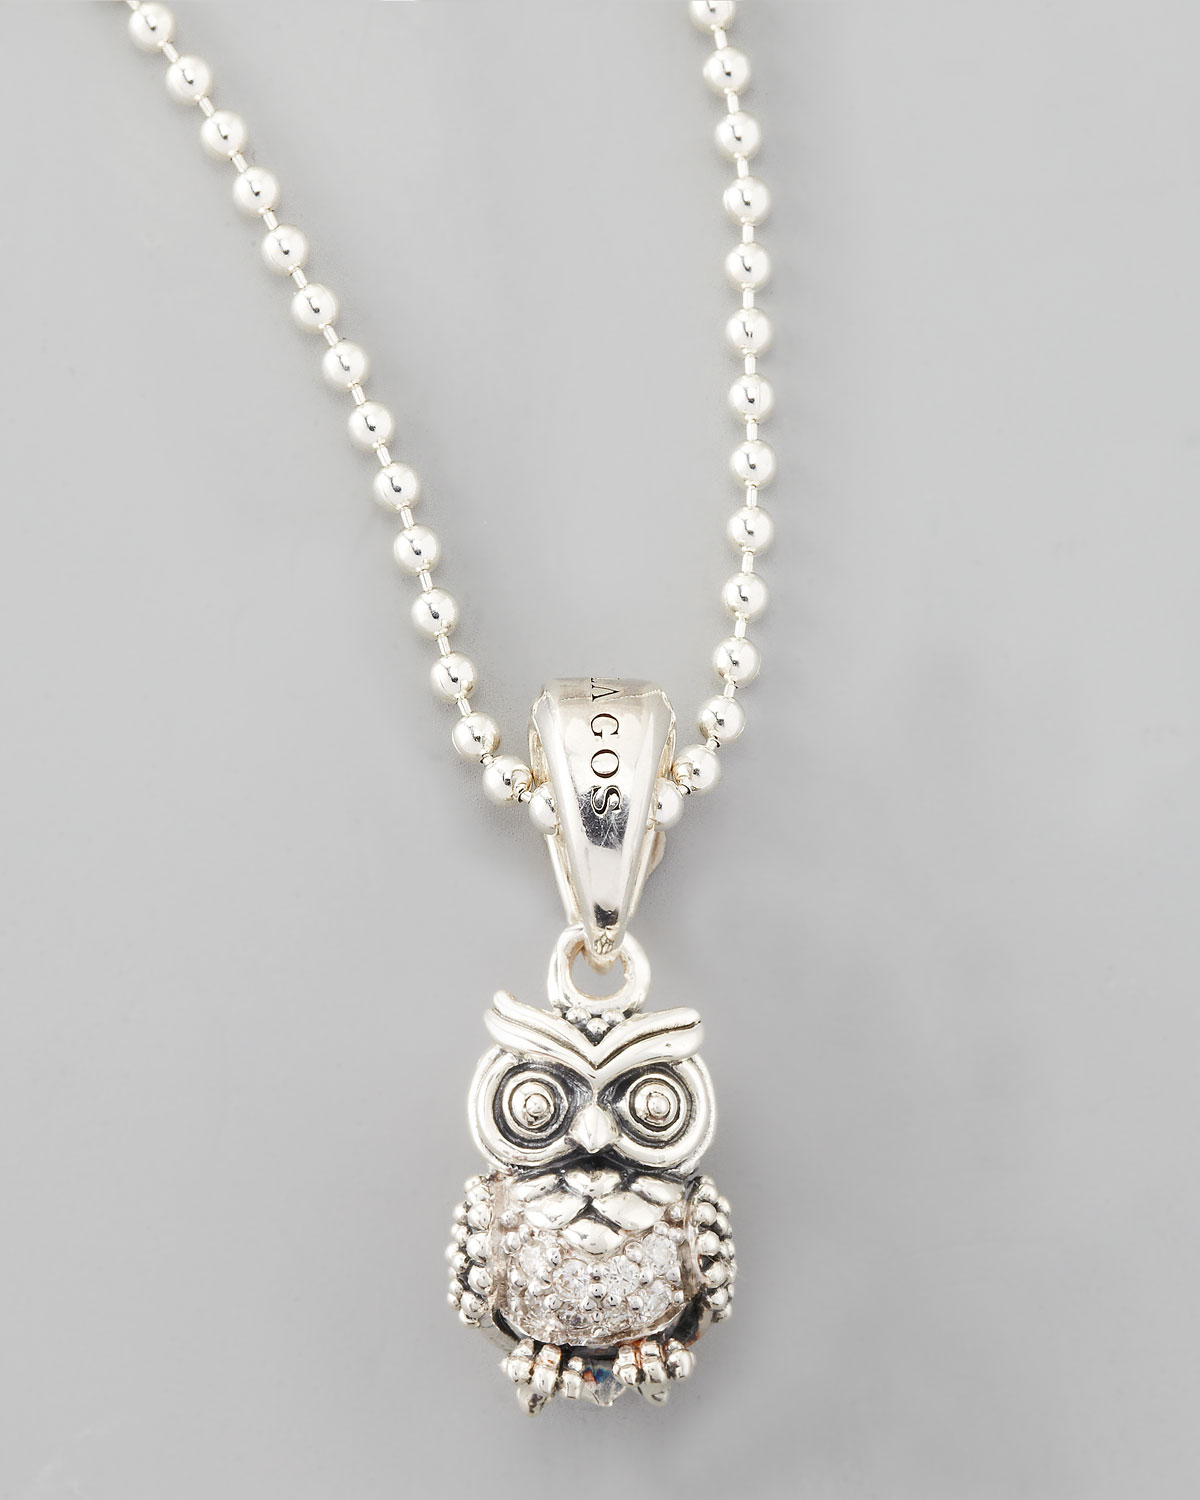 Lyst lagos rare wonders diamond owl pendant necklace in metallic gallery aloadofball Image collections